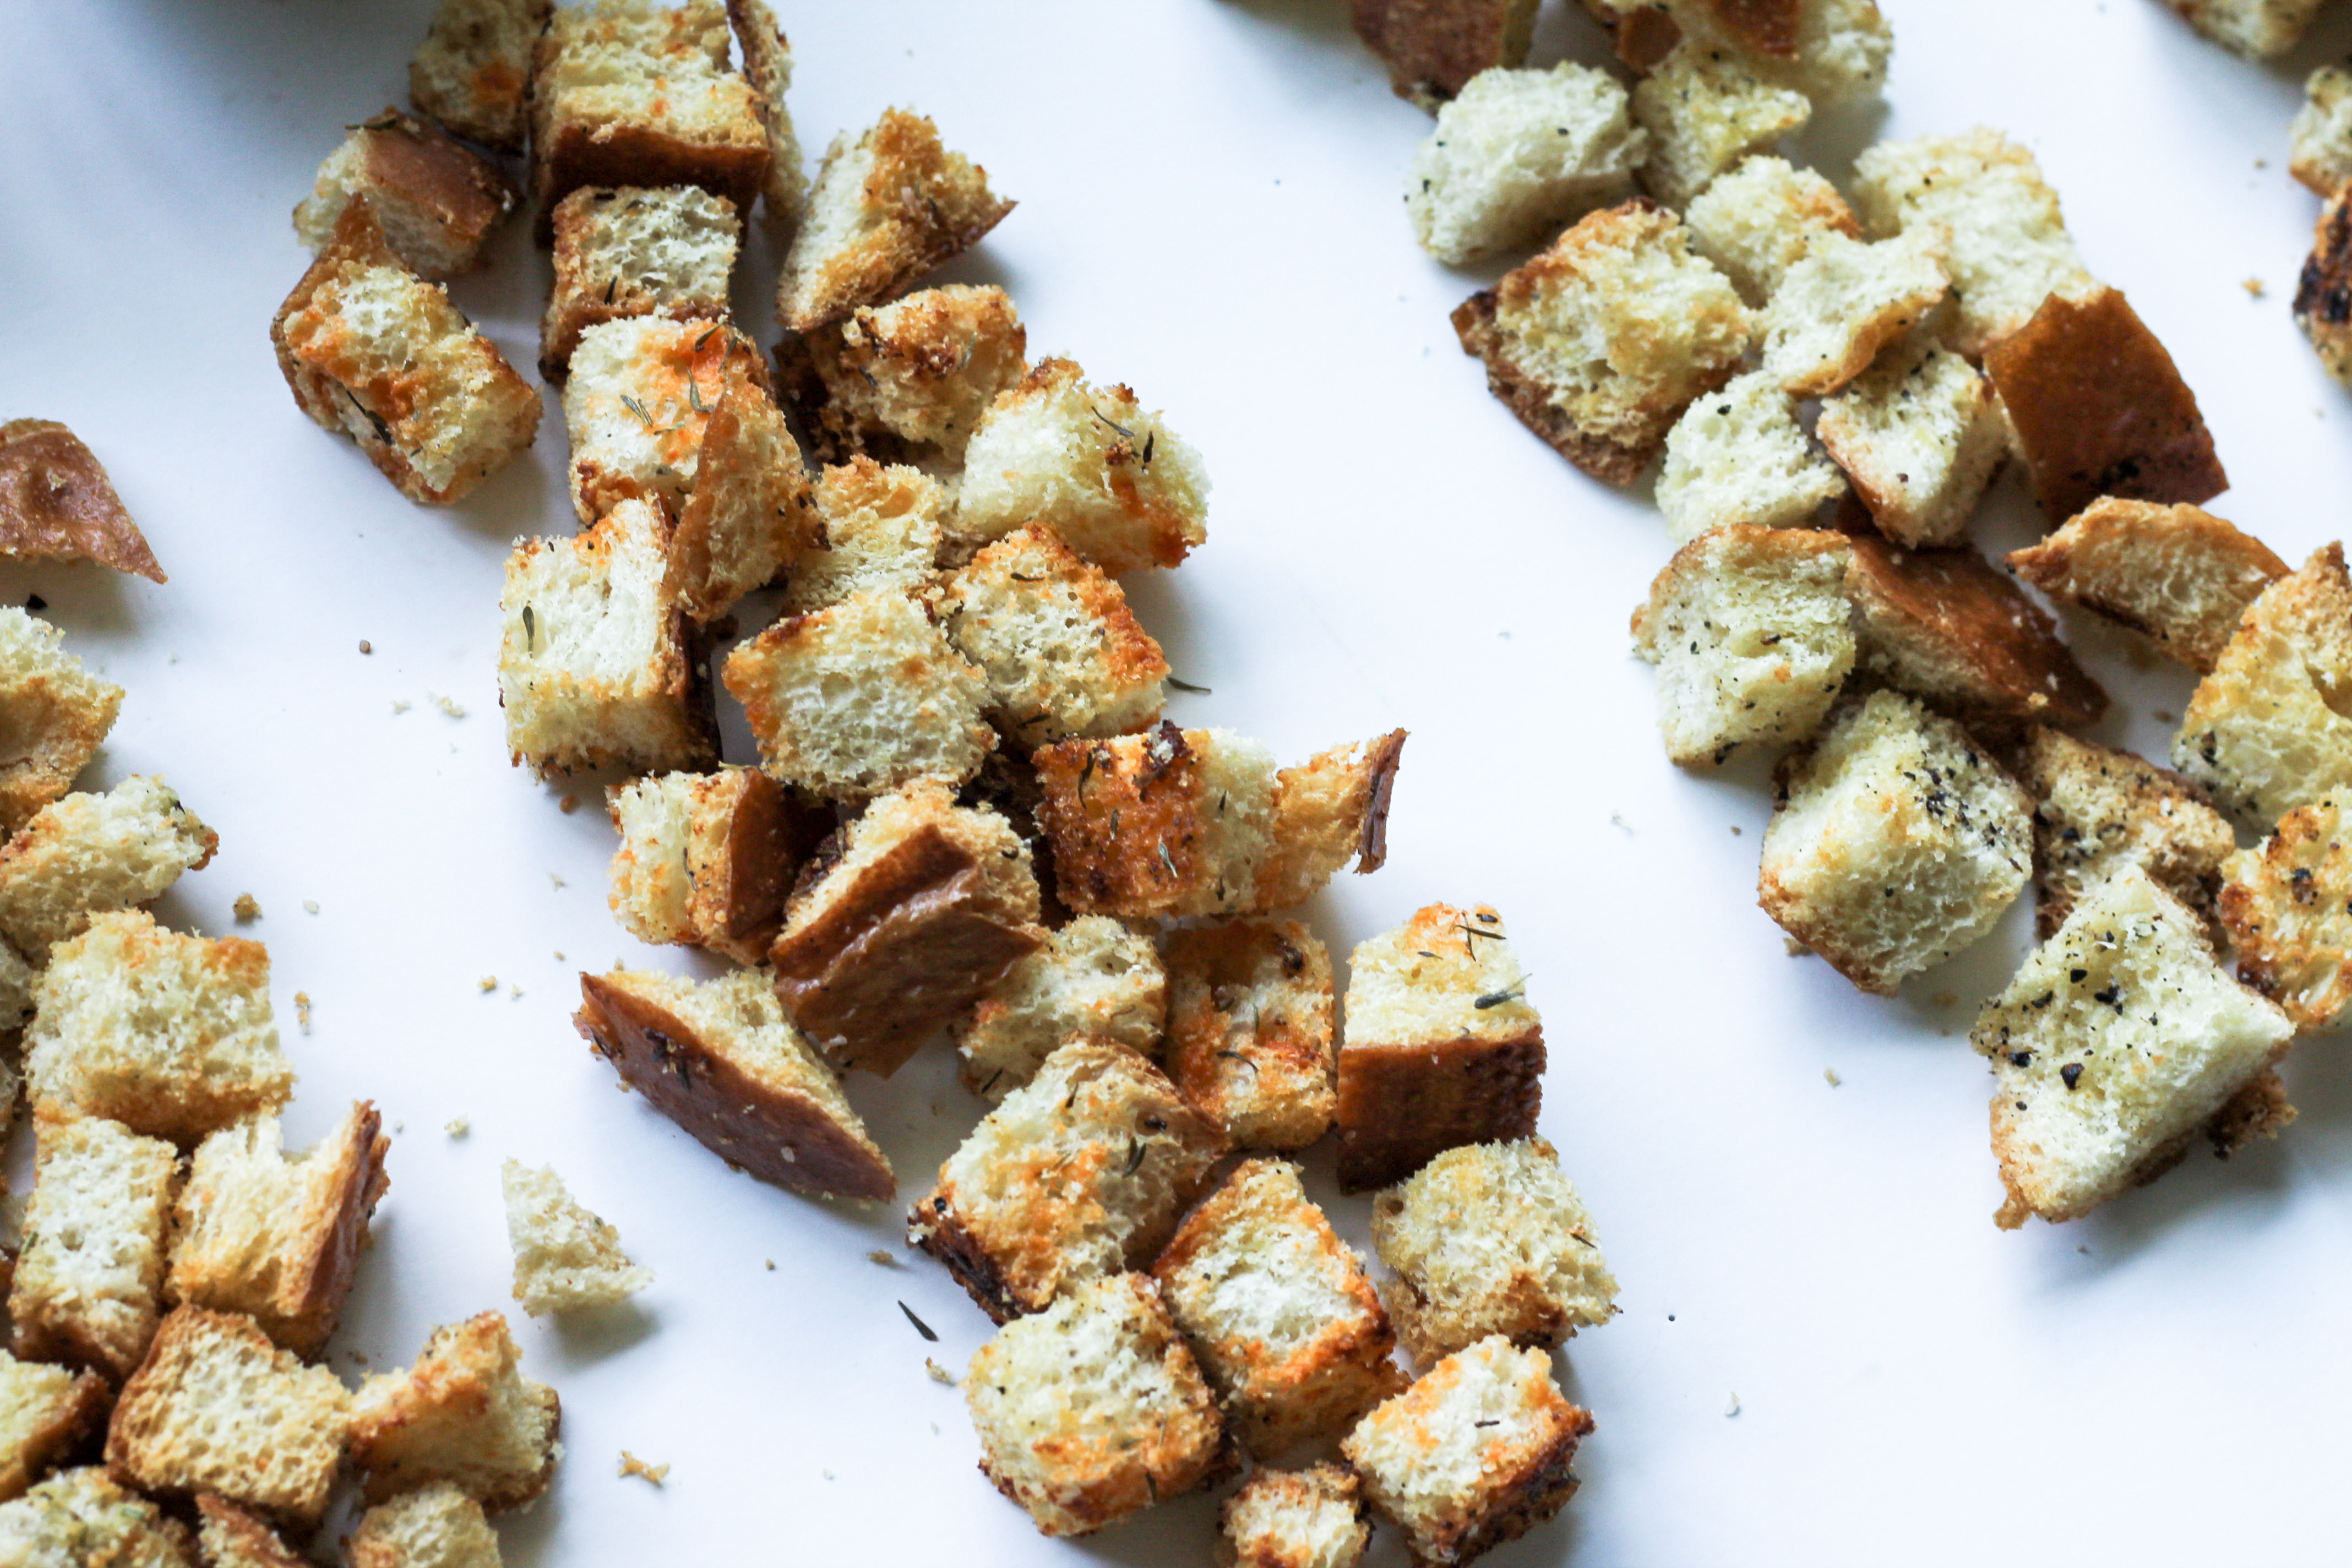 Flavored Croutons 5